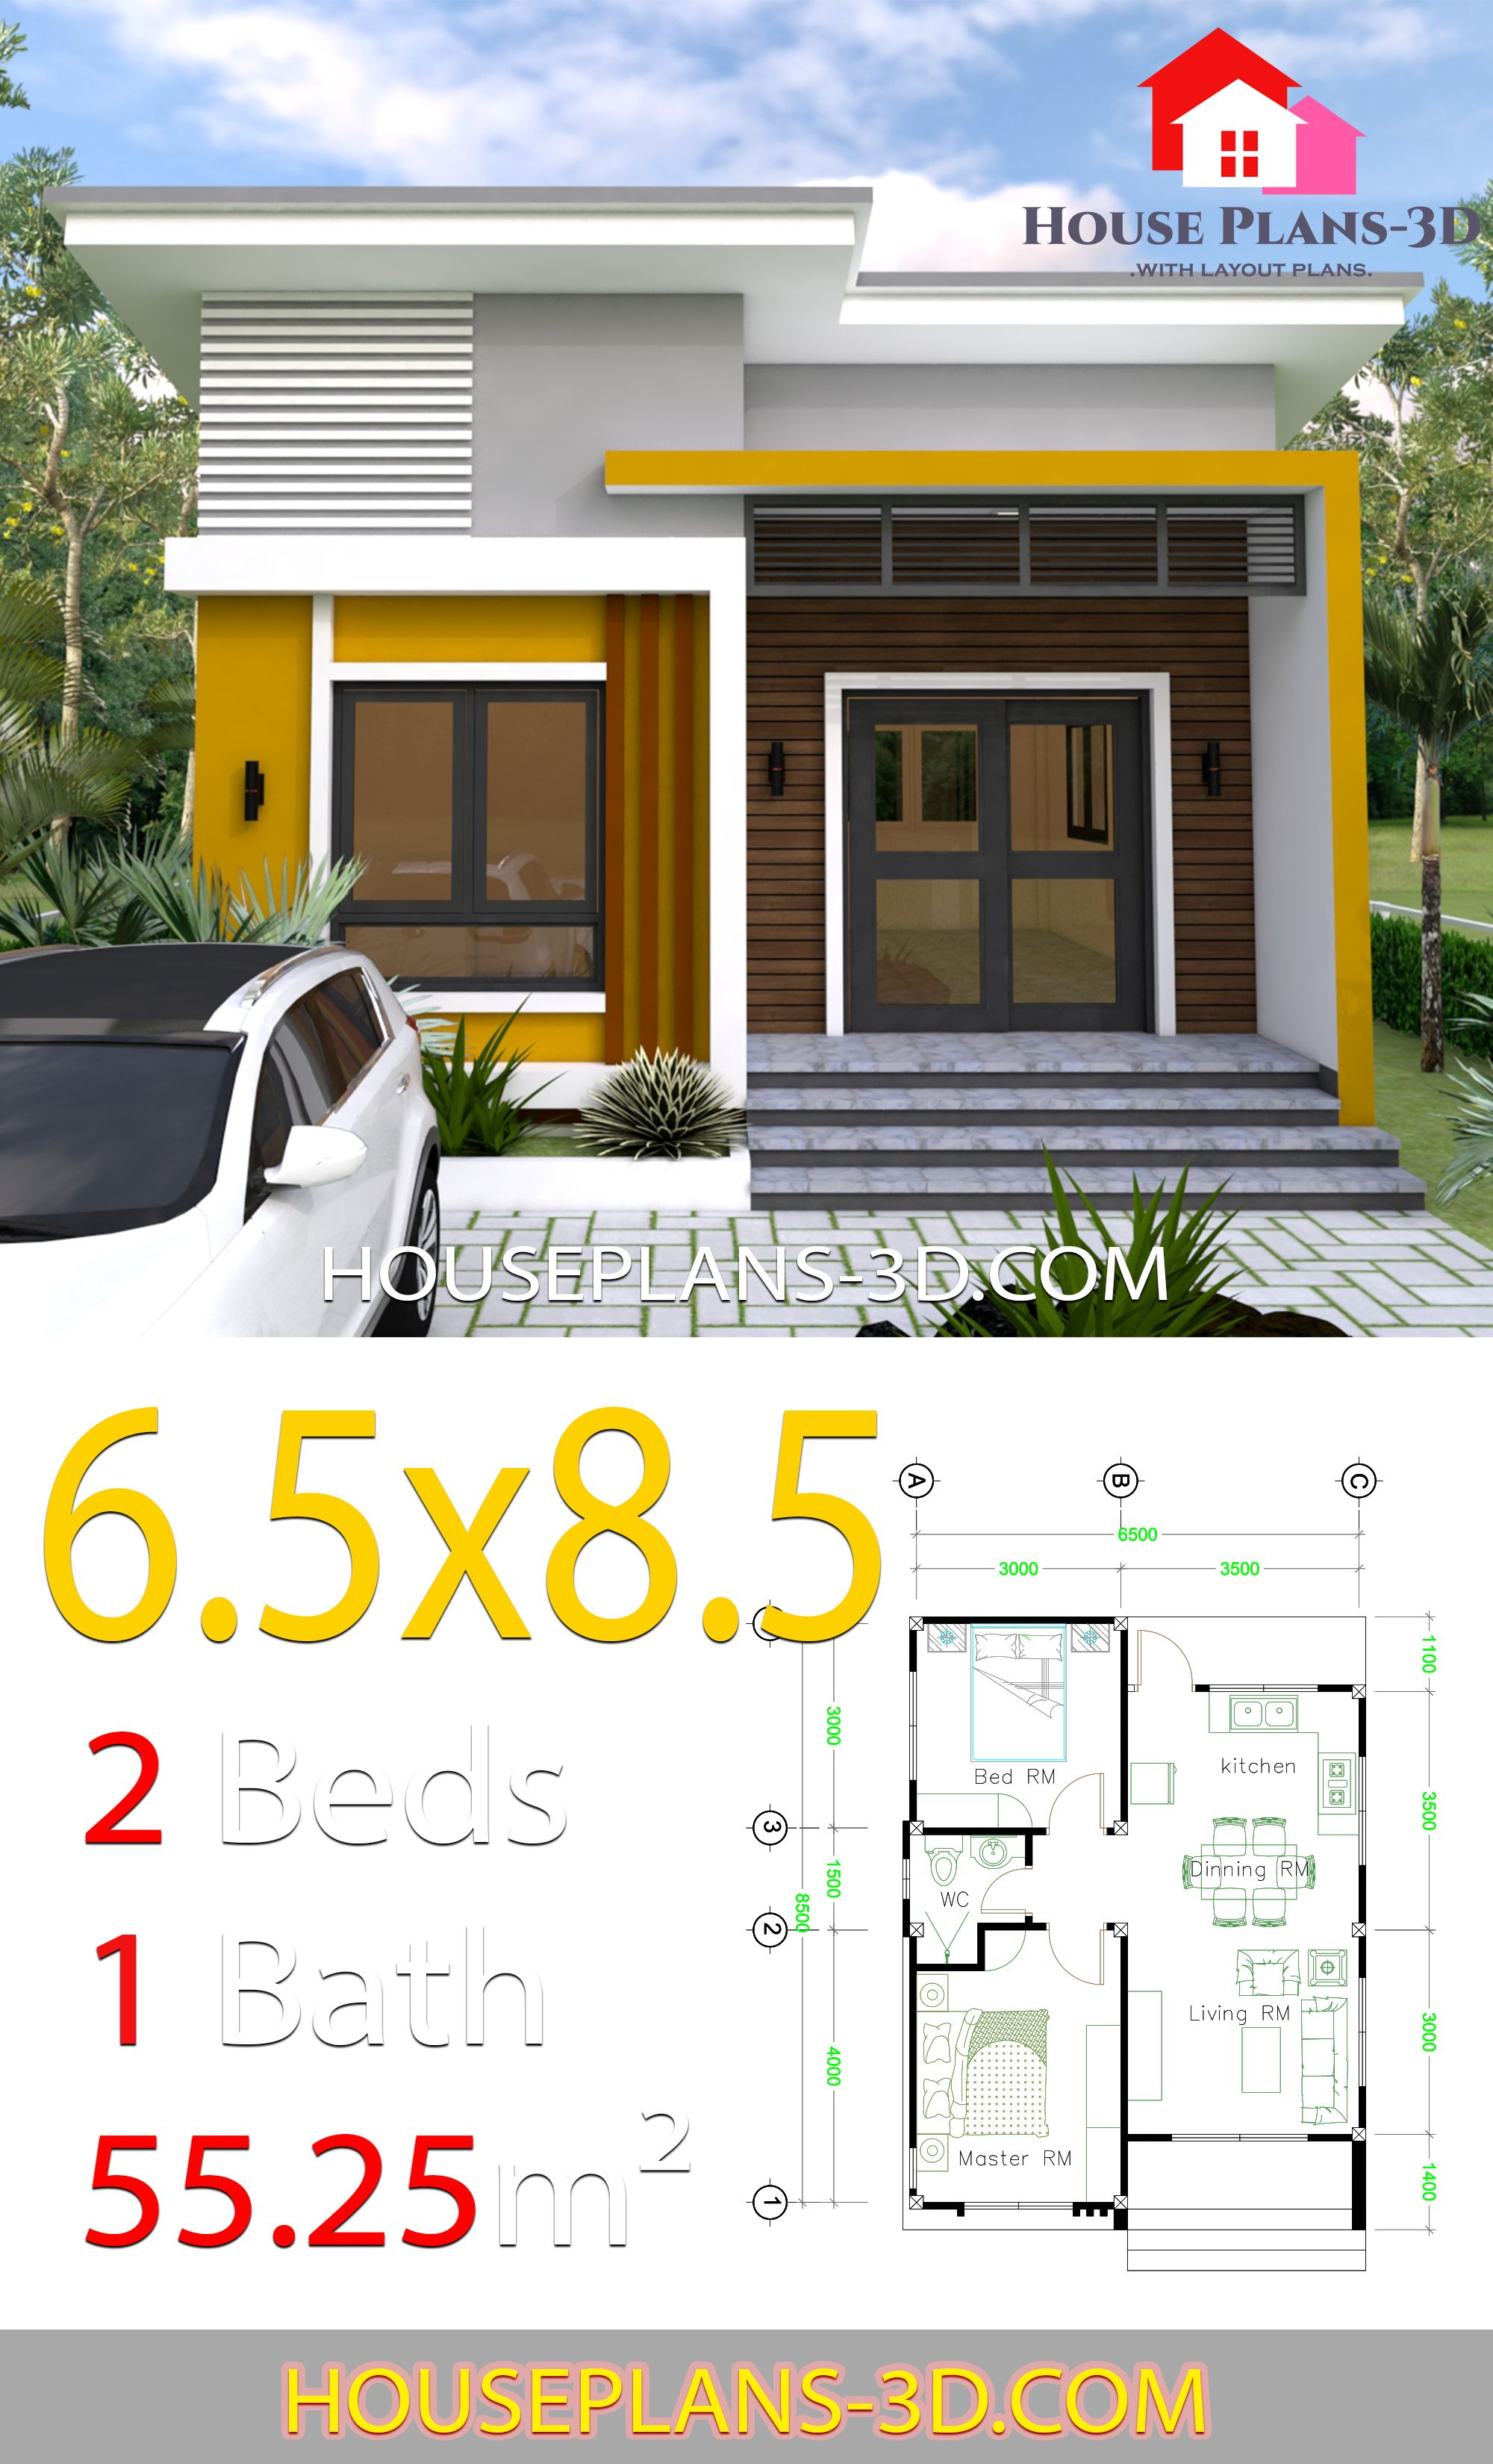 Small House Design 6 5x8 5 With 2 Bedrooms House Plans 3d House Front Design House Plans Small House Design Plans